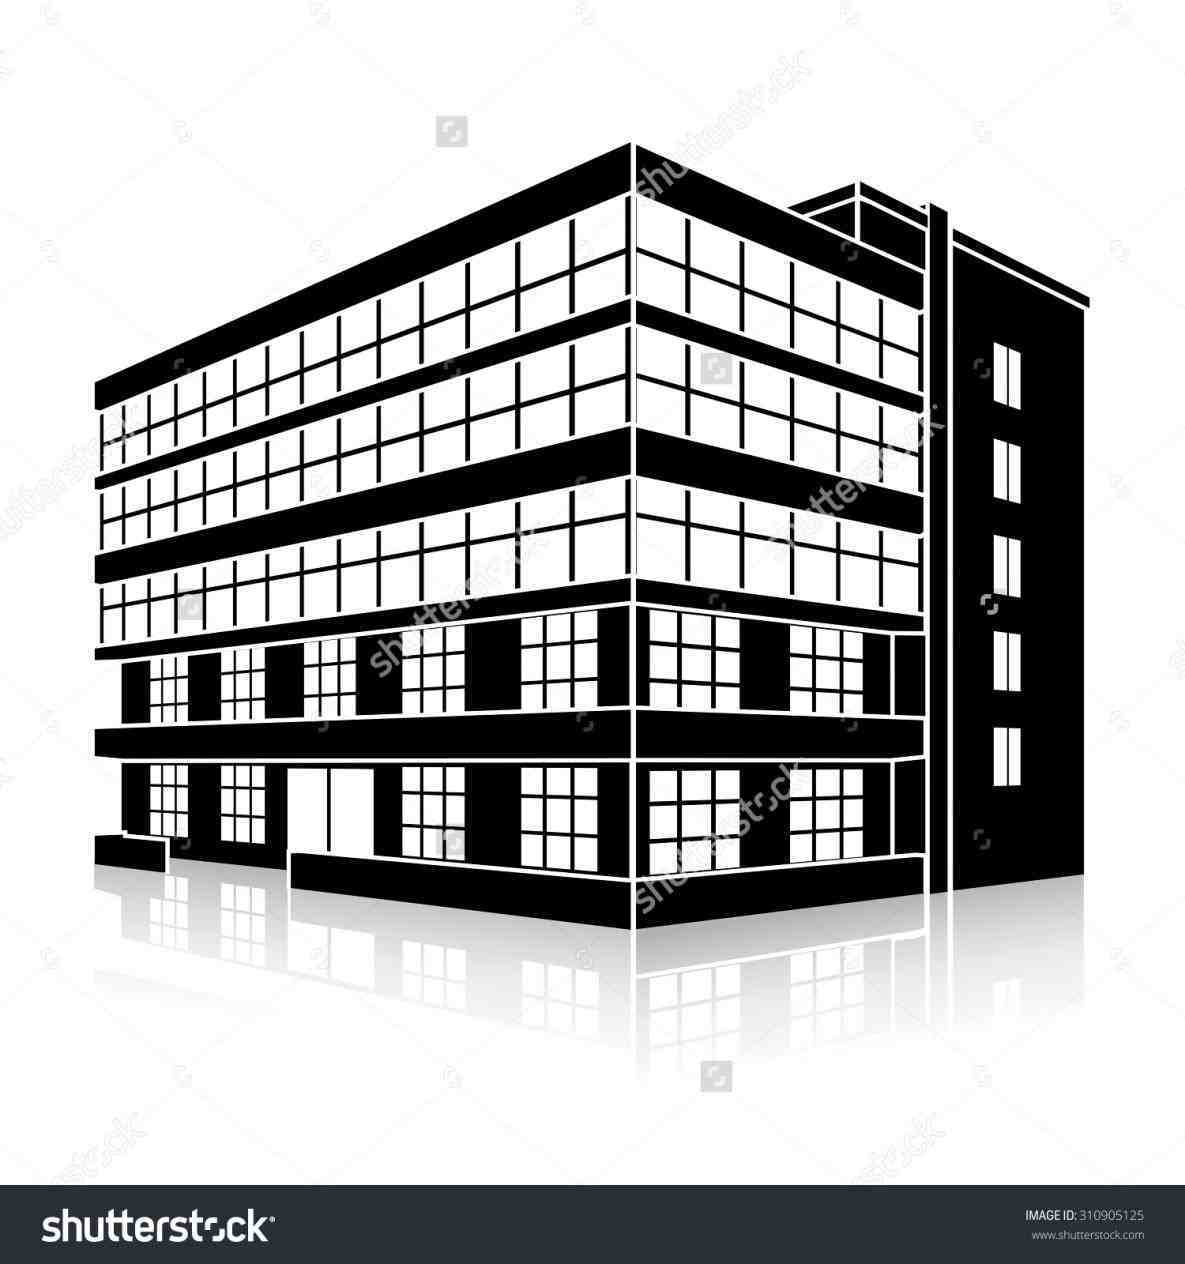 Xtrasrhxtrascom office building apartment. Buildings clipart black and white